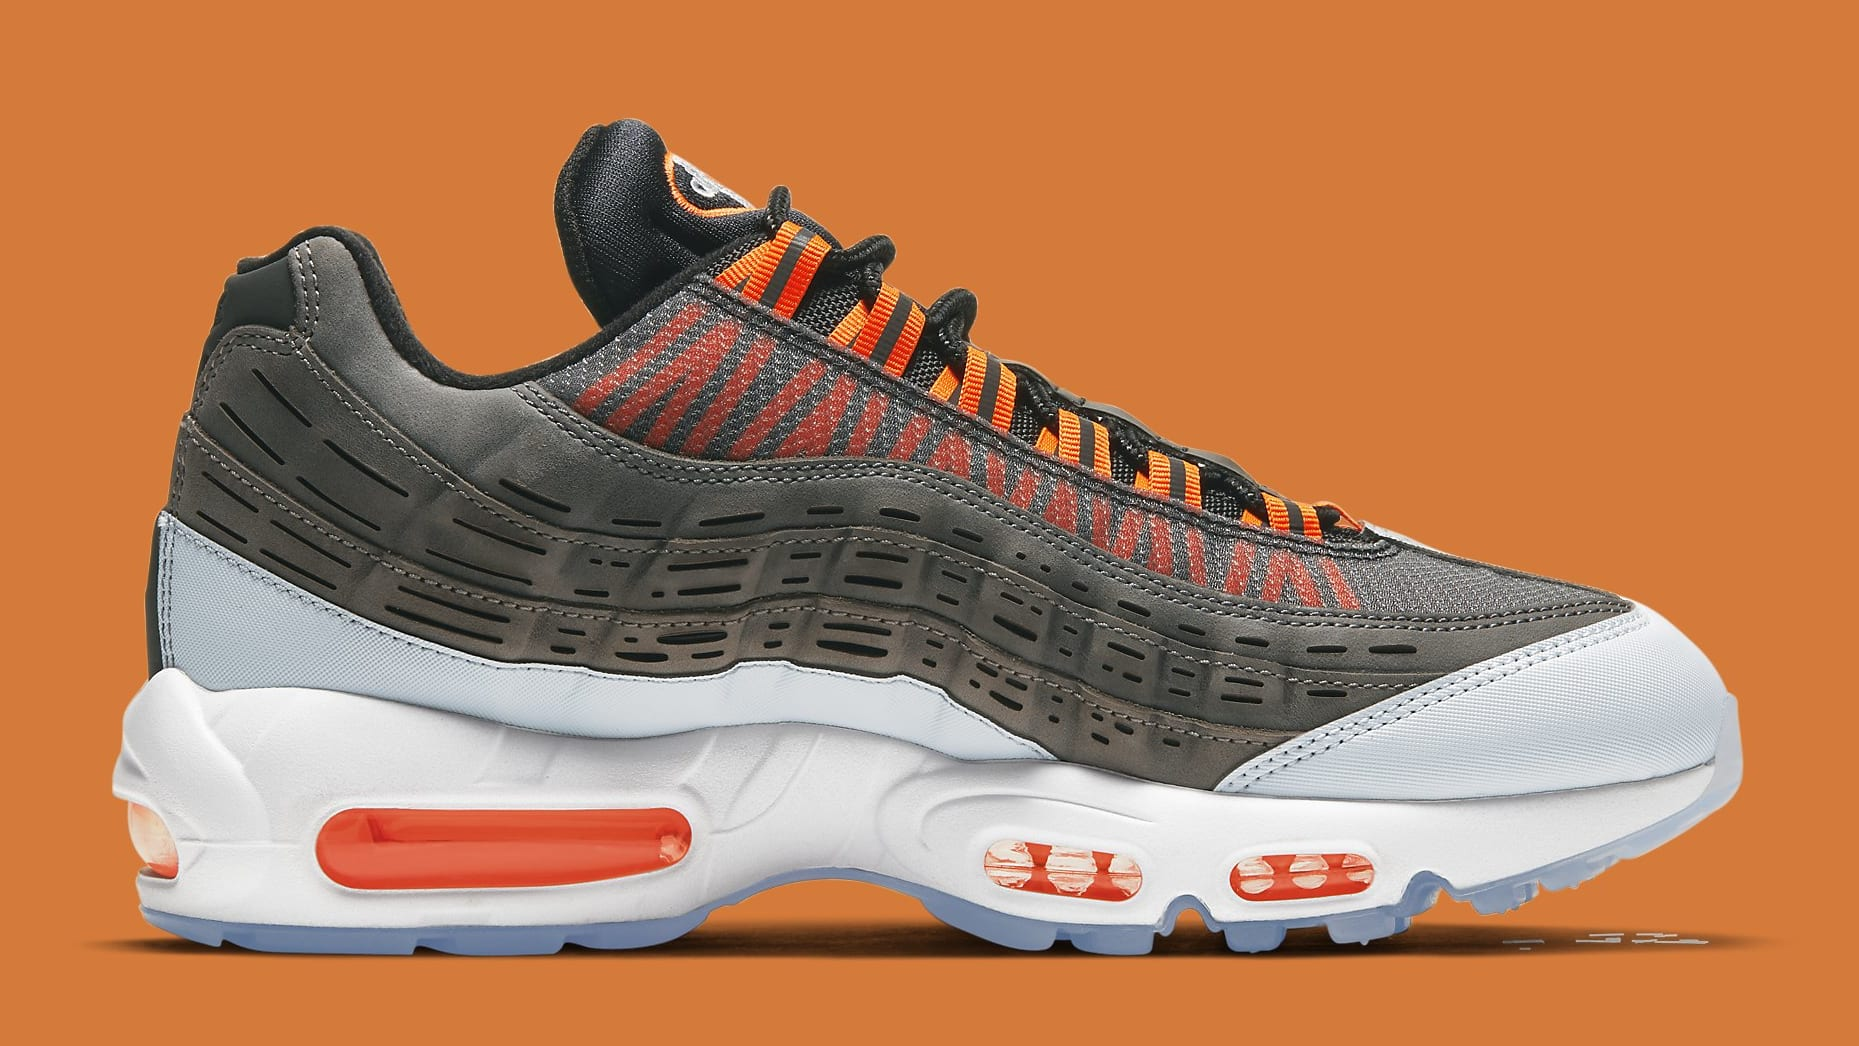 Kim Jones x Nike Air Max 95 Orange Release Date DD1871-001 Medial